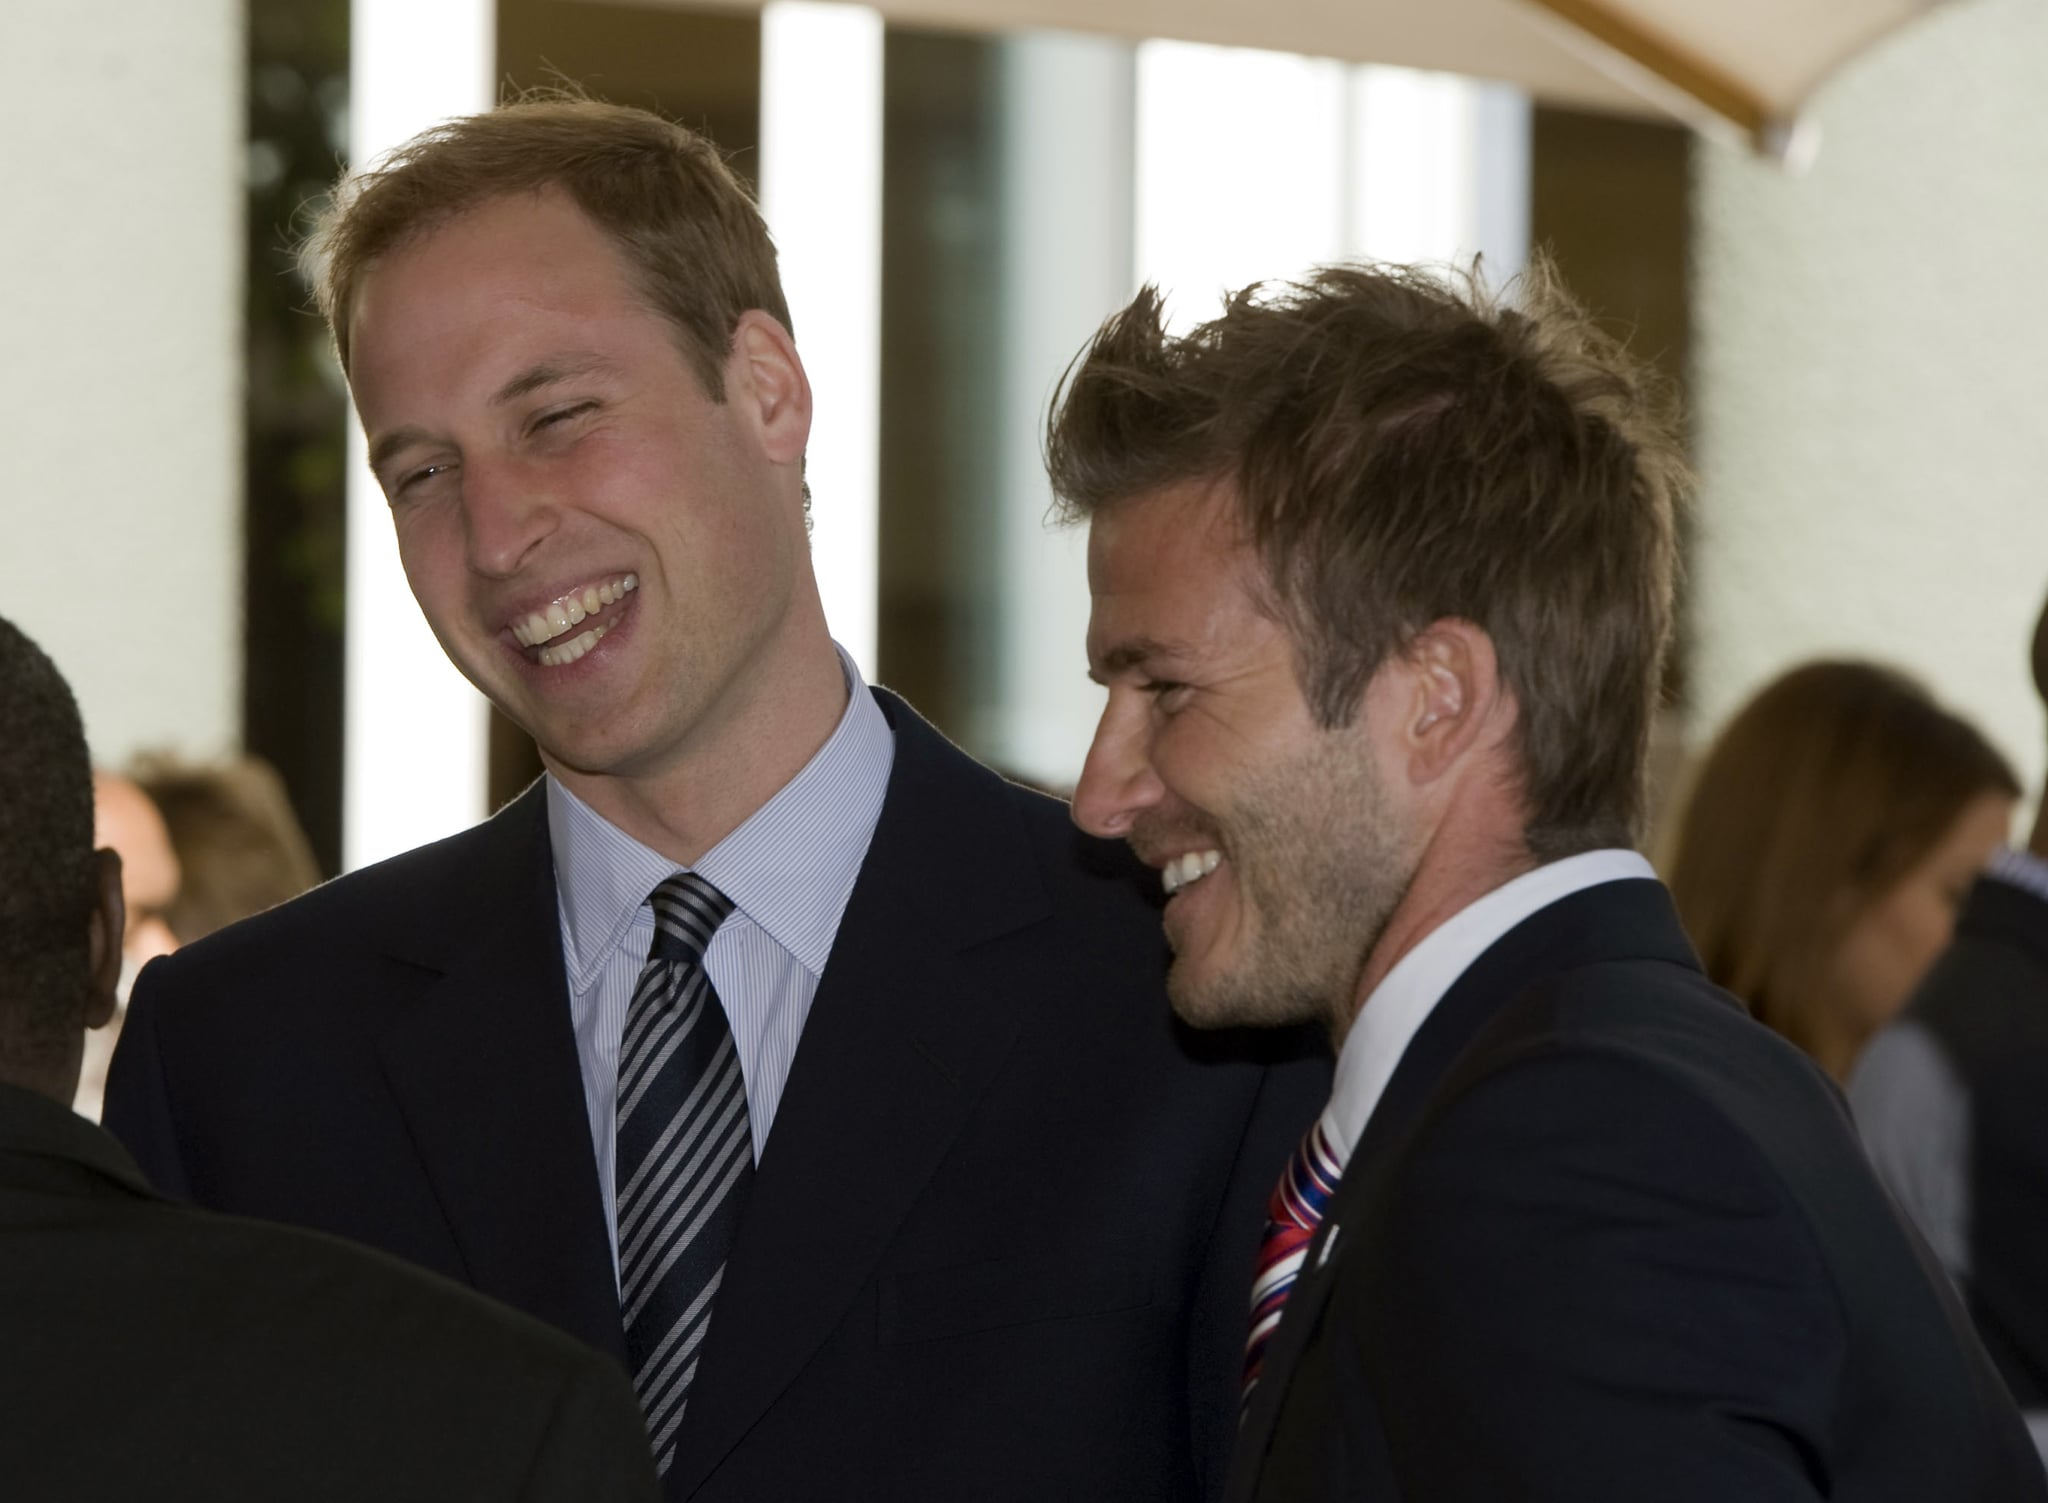 JOHANNESURG - JUNE 19: (N0 PUBLICATION IN UK MEDIA FOR 28 DAYS)   Prince William, Prince Harry and David Beckham attend a reception for FIFA officials on behalf of the English Football Association in honour of the 2010 Football FIFA World Cup on June 19, 2010 in Johannesburg, South Africa. (Photo by Samir Hussein/Wireimage)